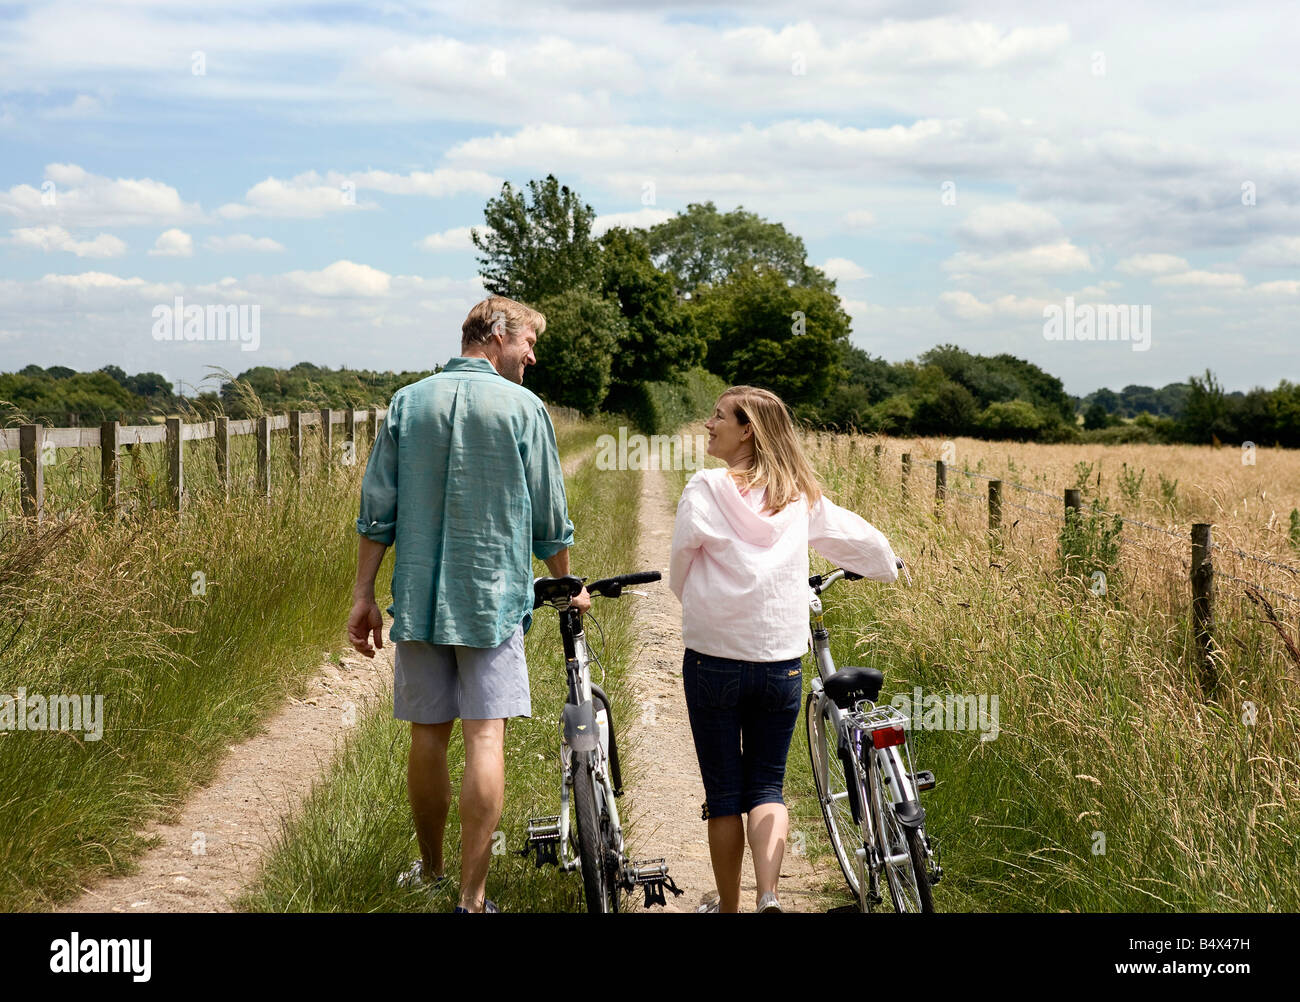 Couple walking with cycles - Stock Image